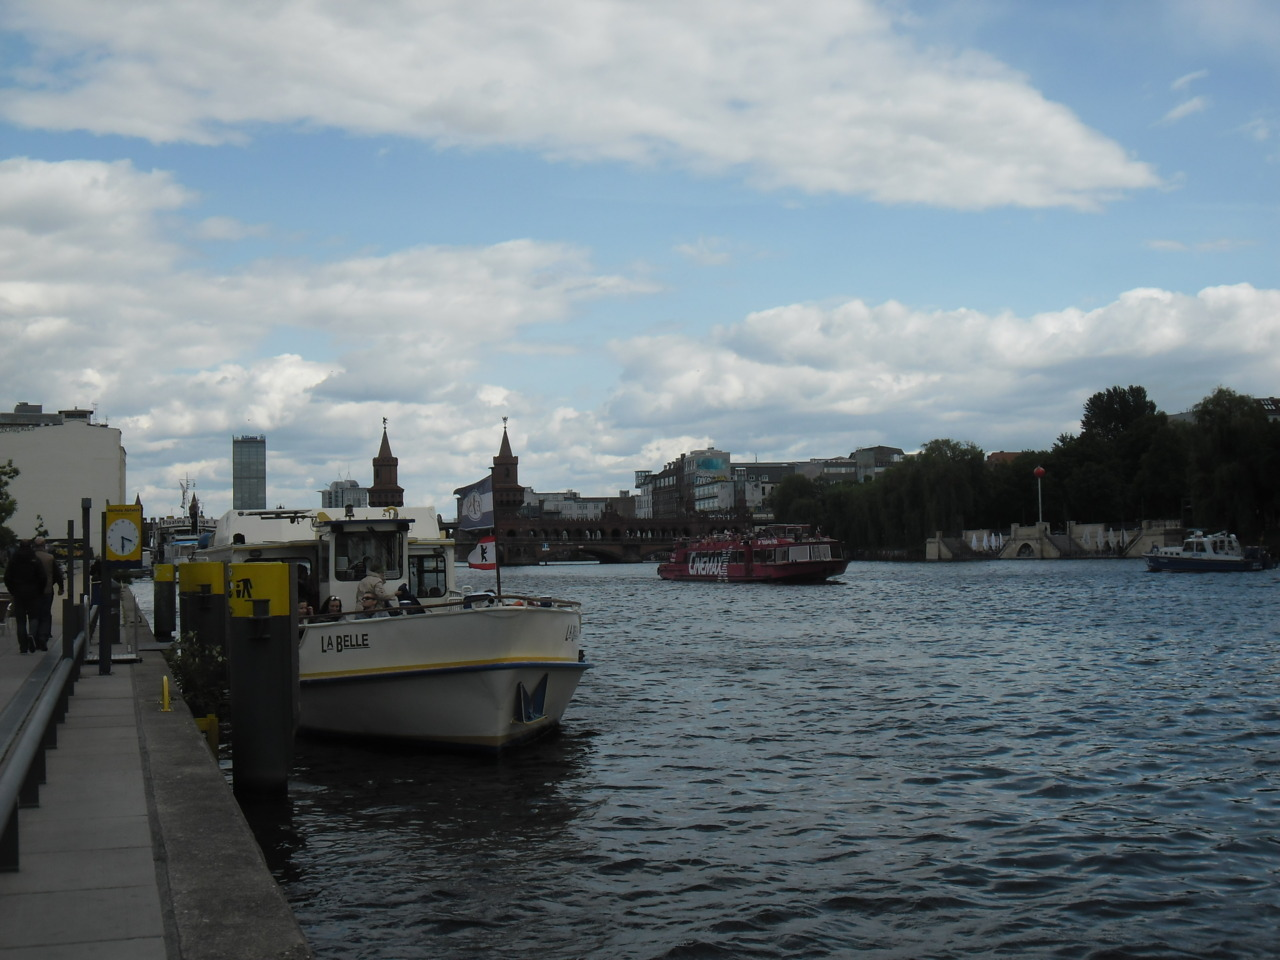 View over the Spree River from the East Side Gallery in Berlin, Germany. (Photo taken by me, 17 May 2012.)